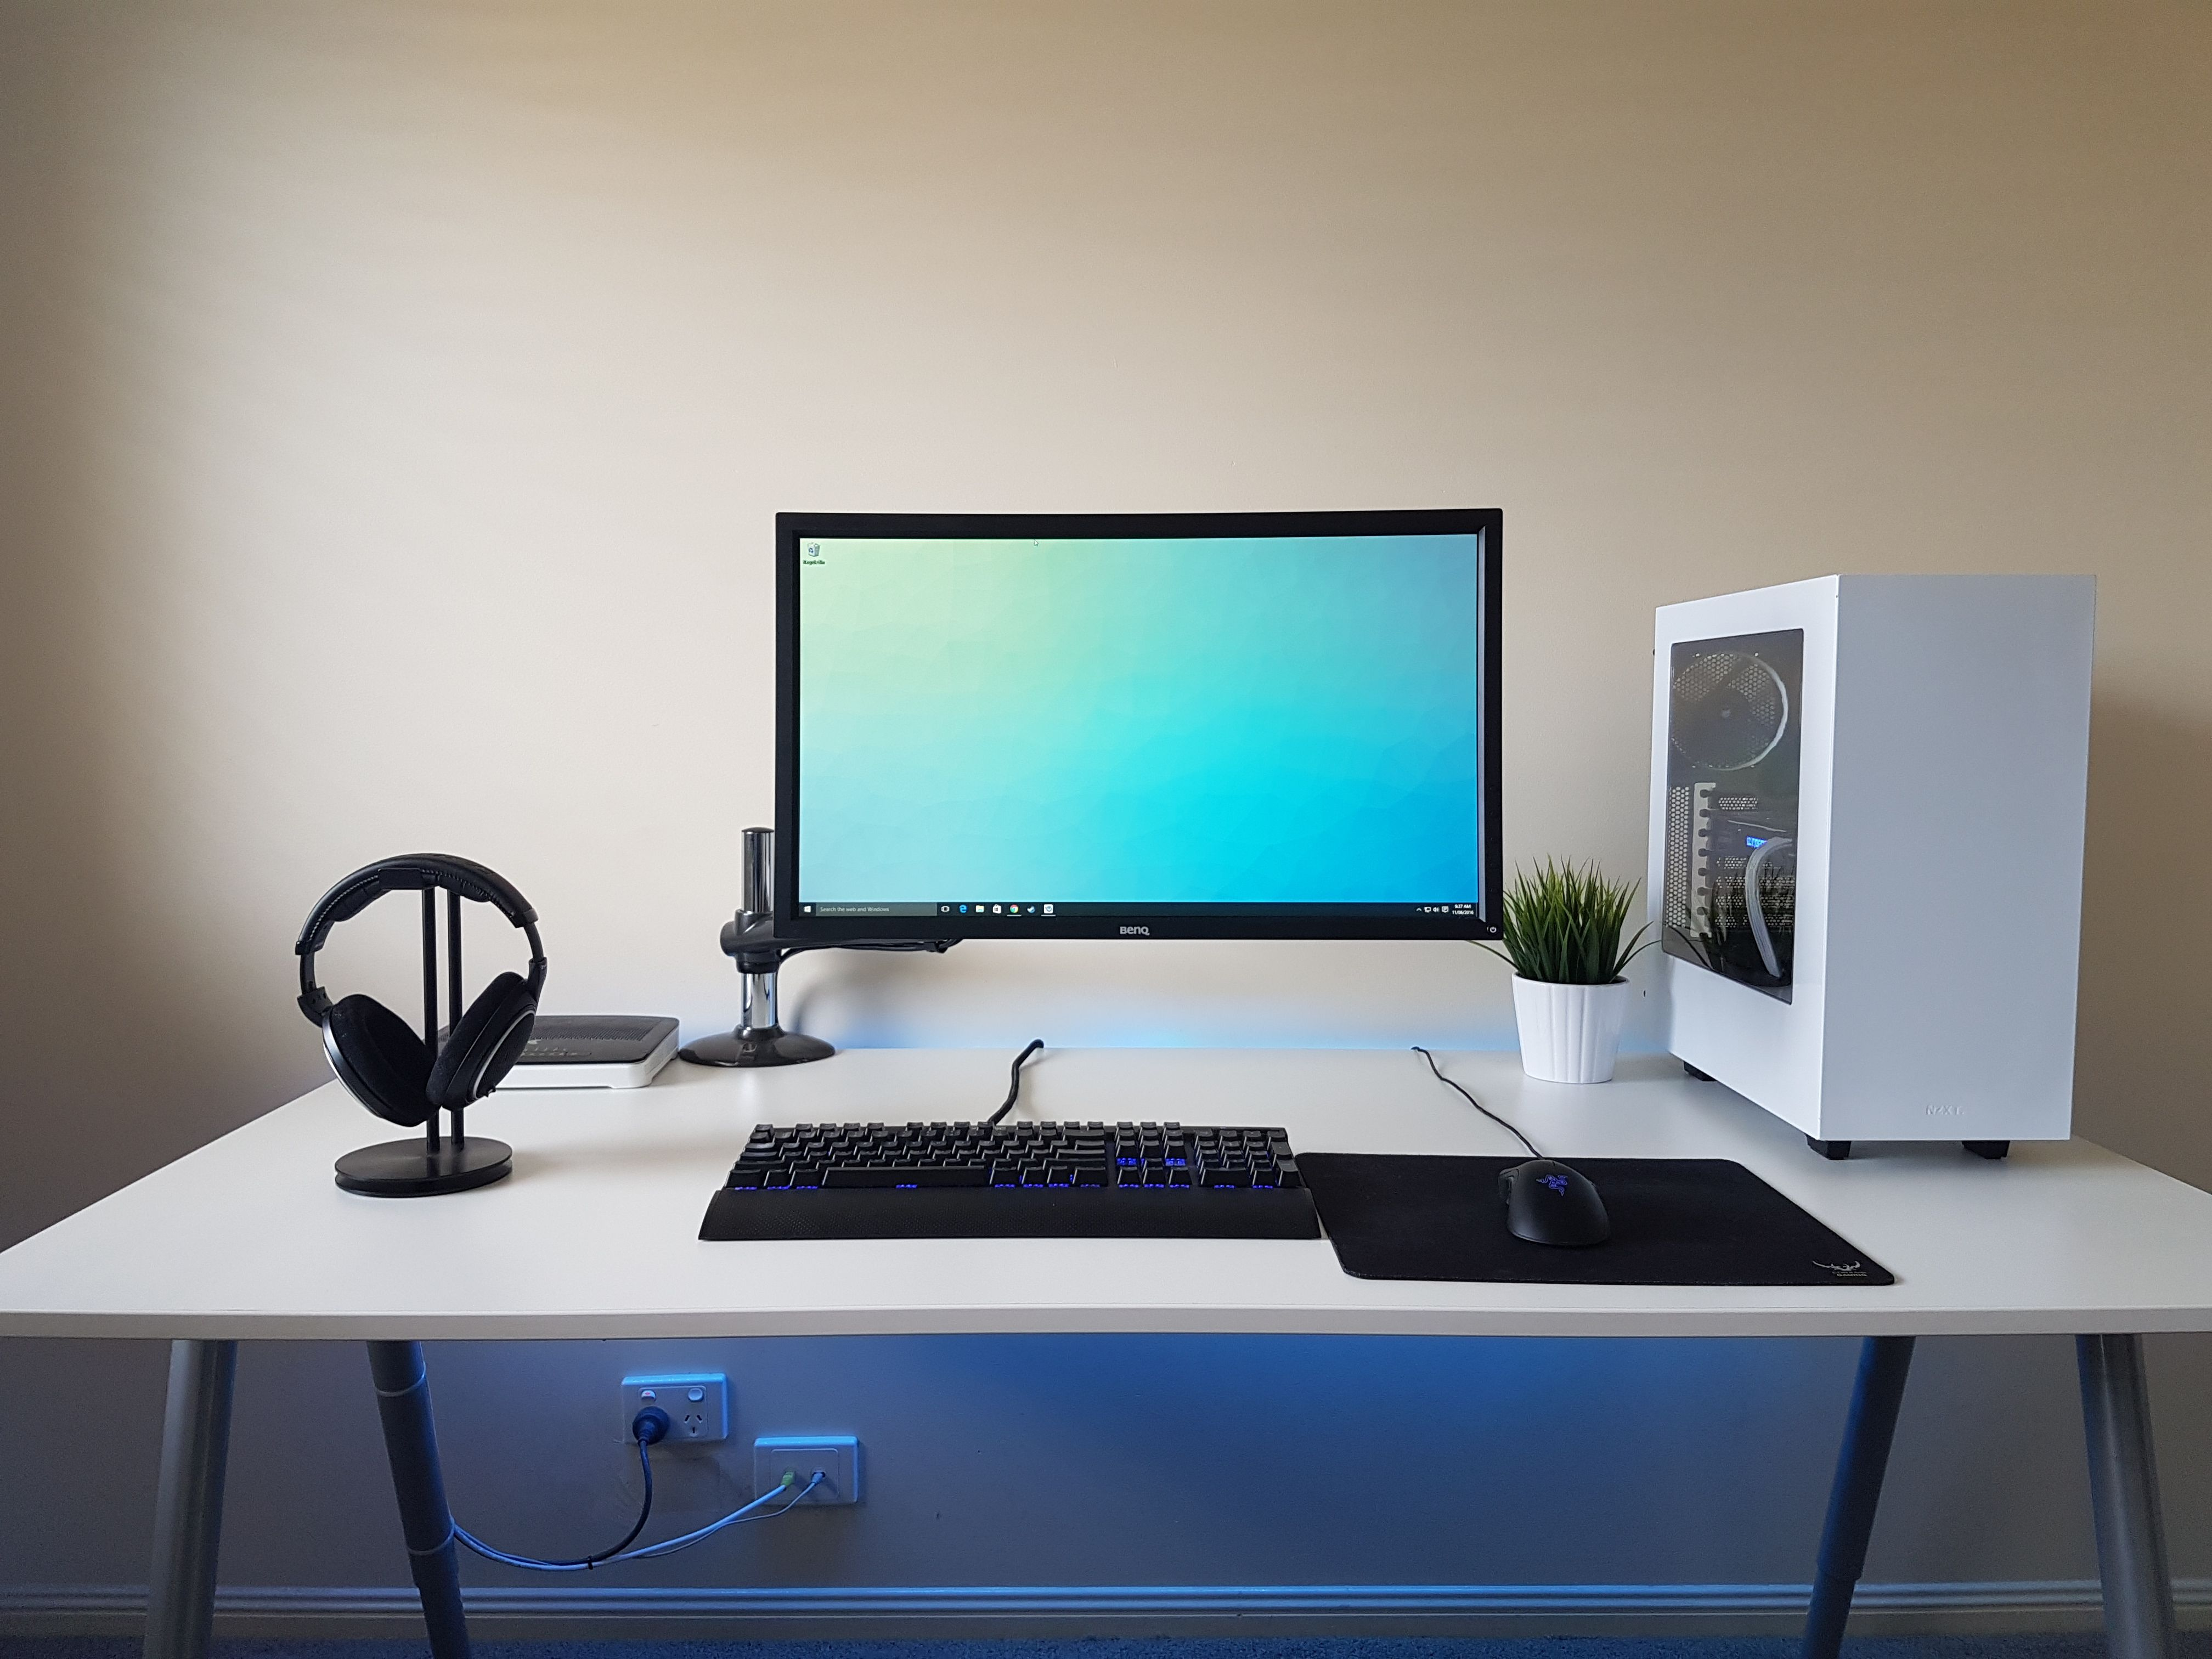 Desk Setup Ideas The Most Awesome Images On The Internet Gaming Set Up